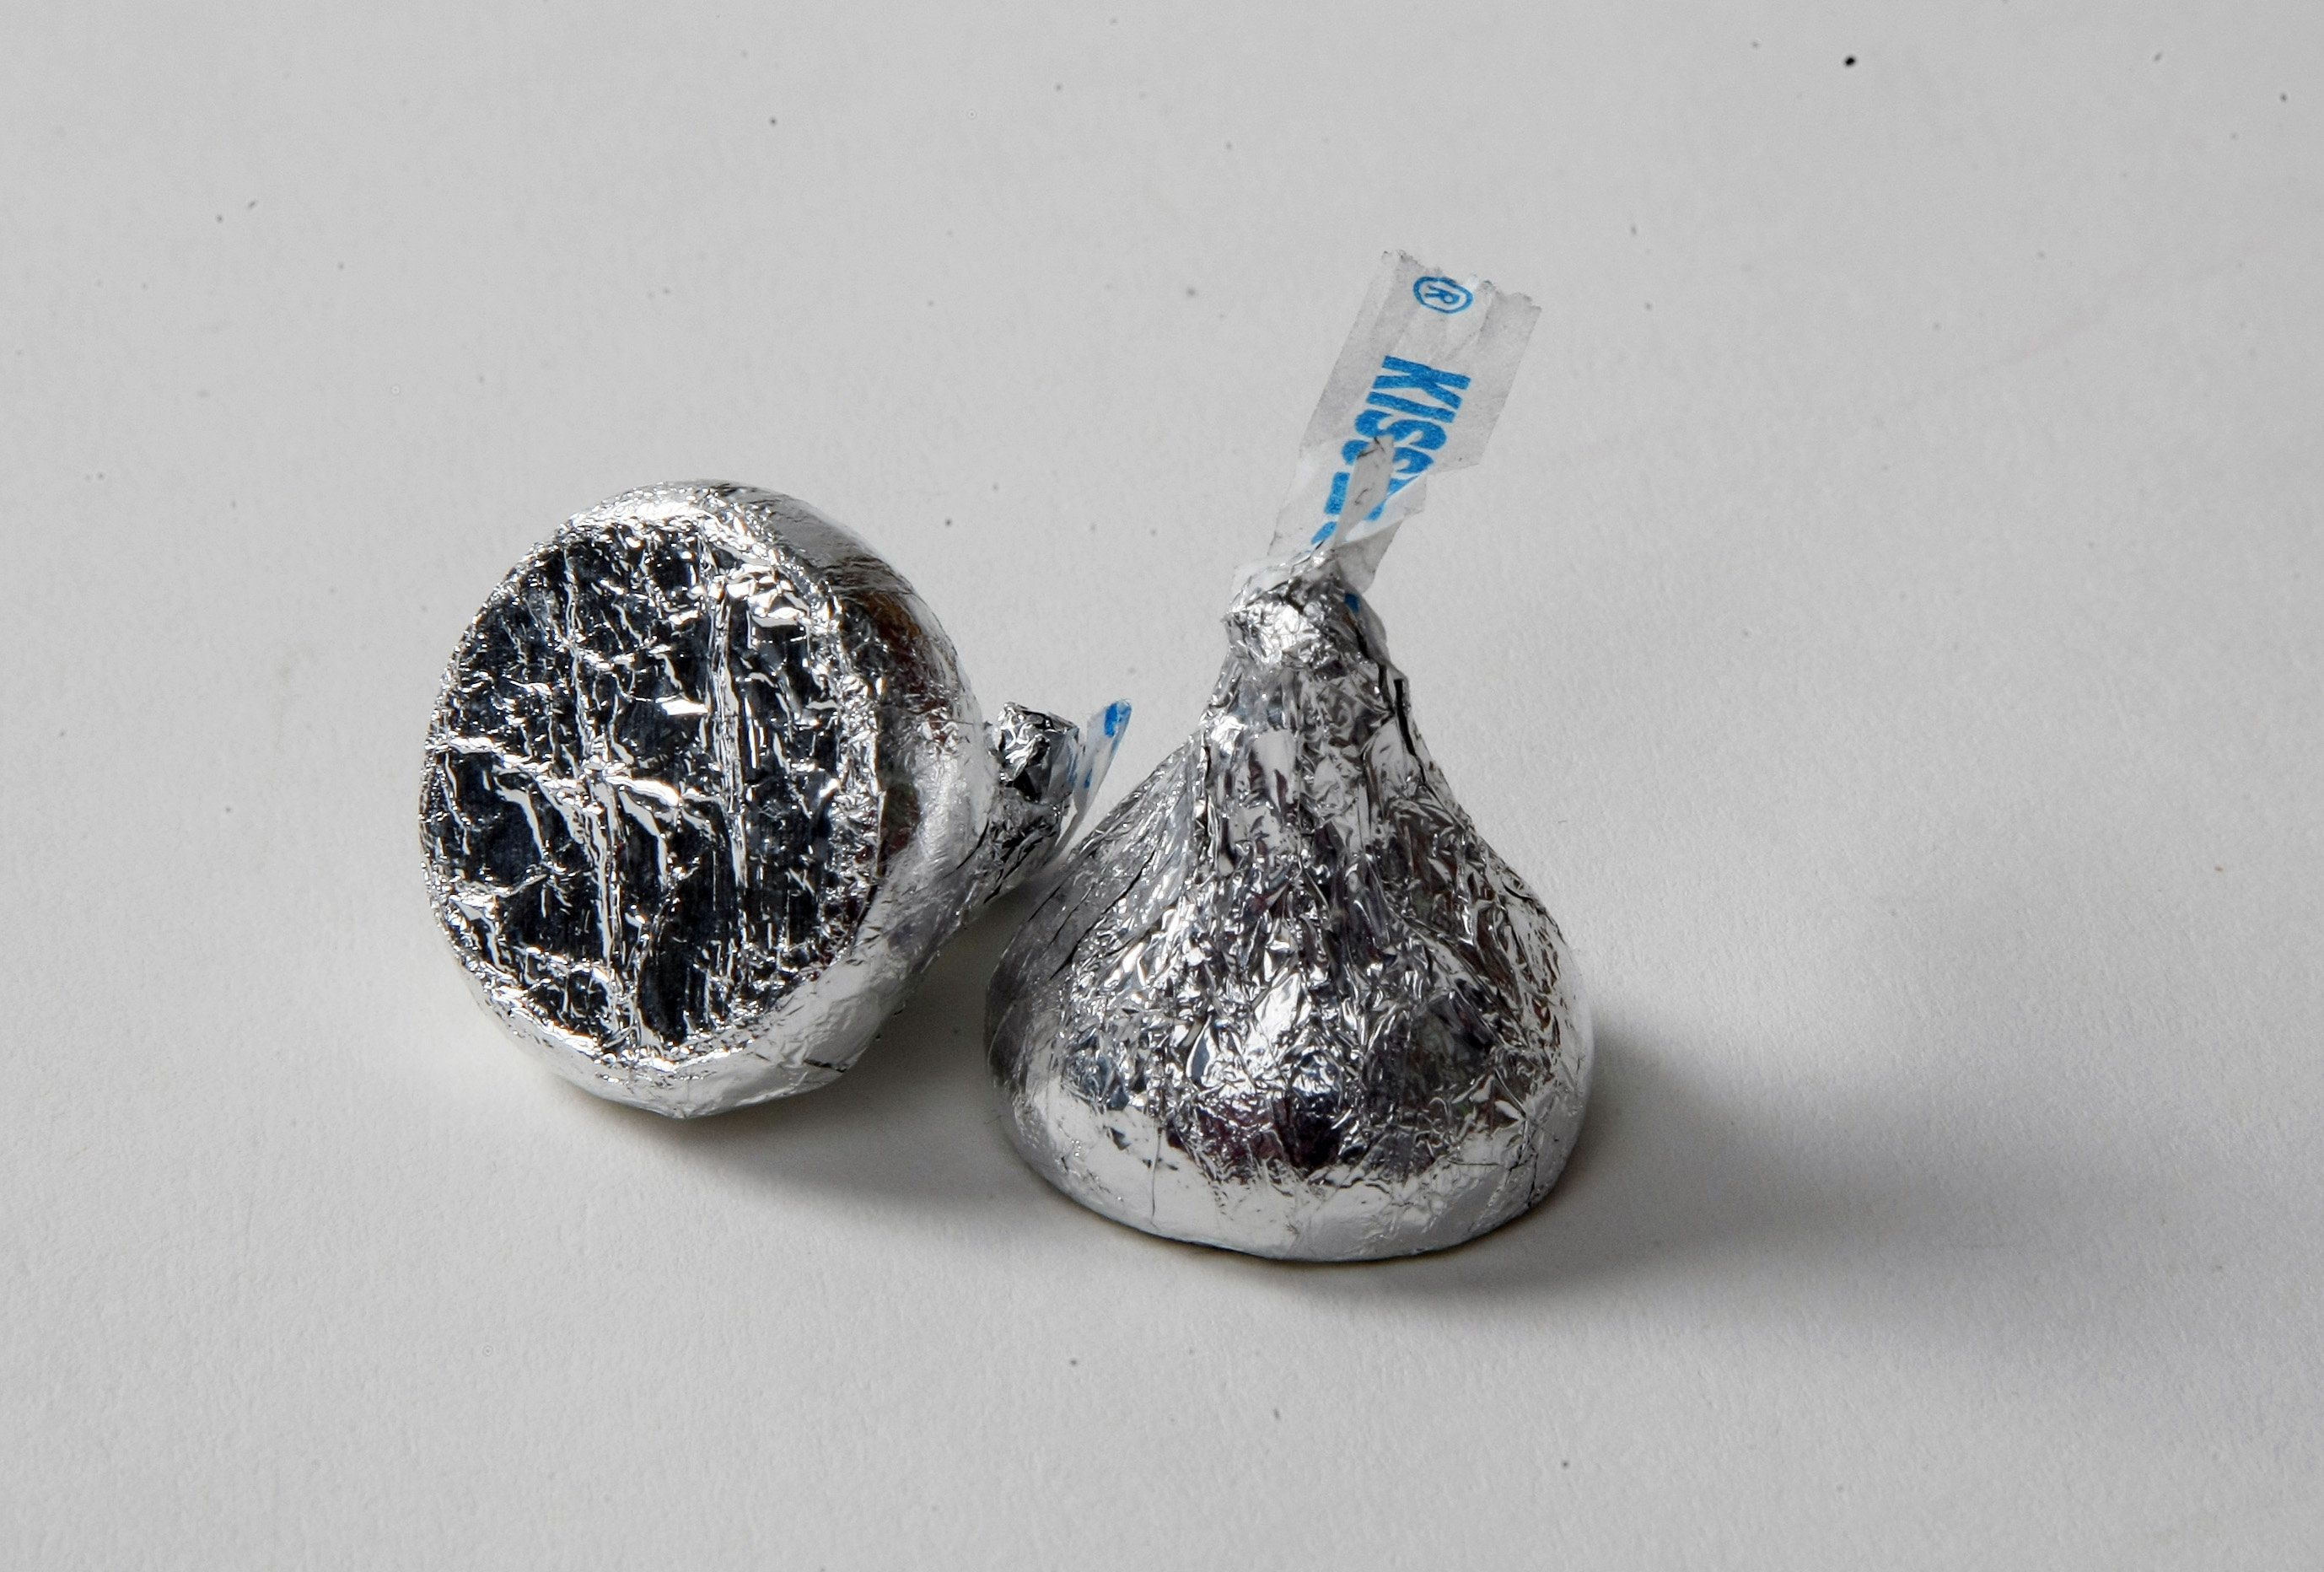 December 10, 2008 Studio shots of Hershey Kisses. Toronto Star/Andrew Wallace (Photo by Andrew Francis Wallace/Toronto Star via Getty Images)